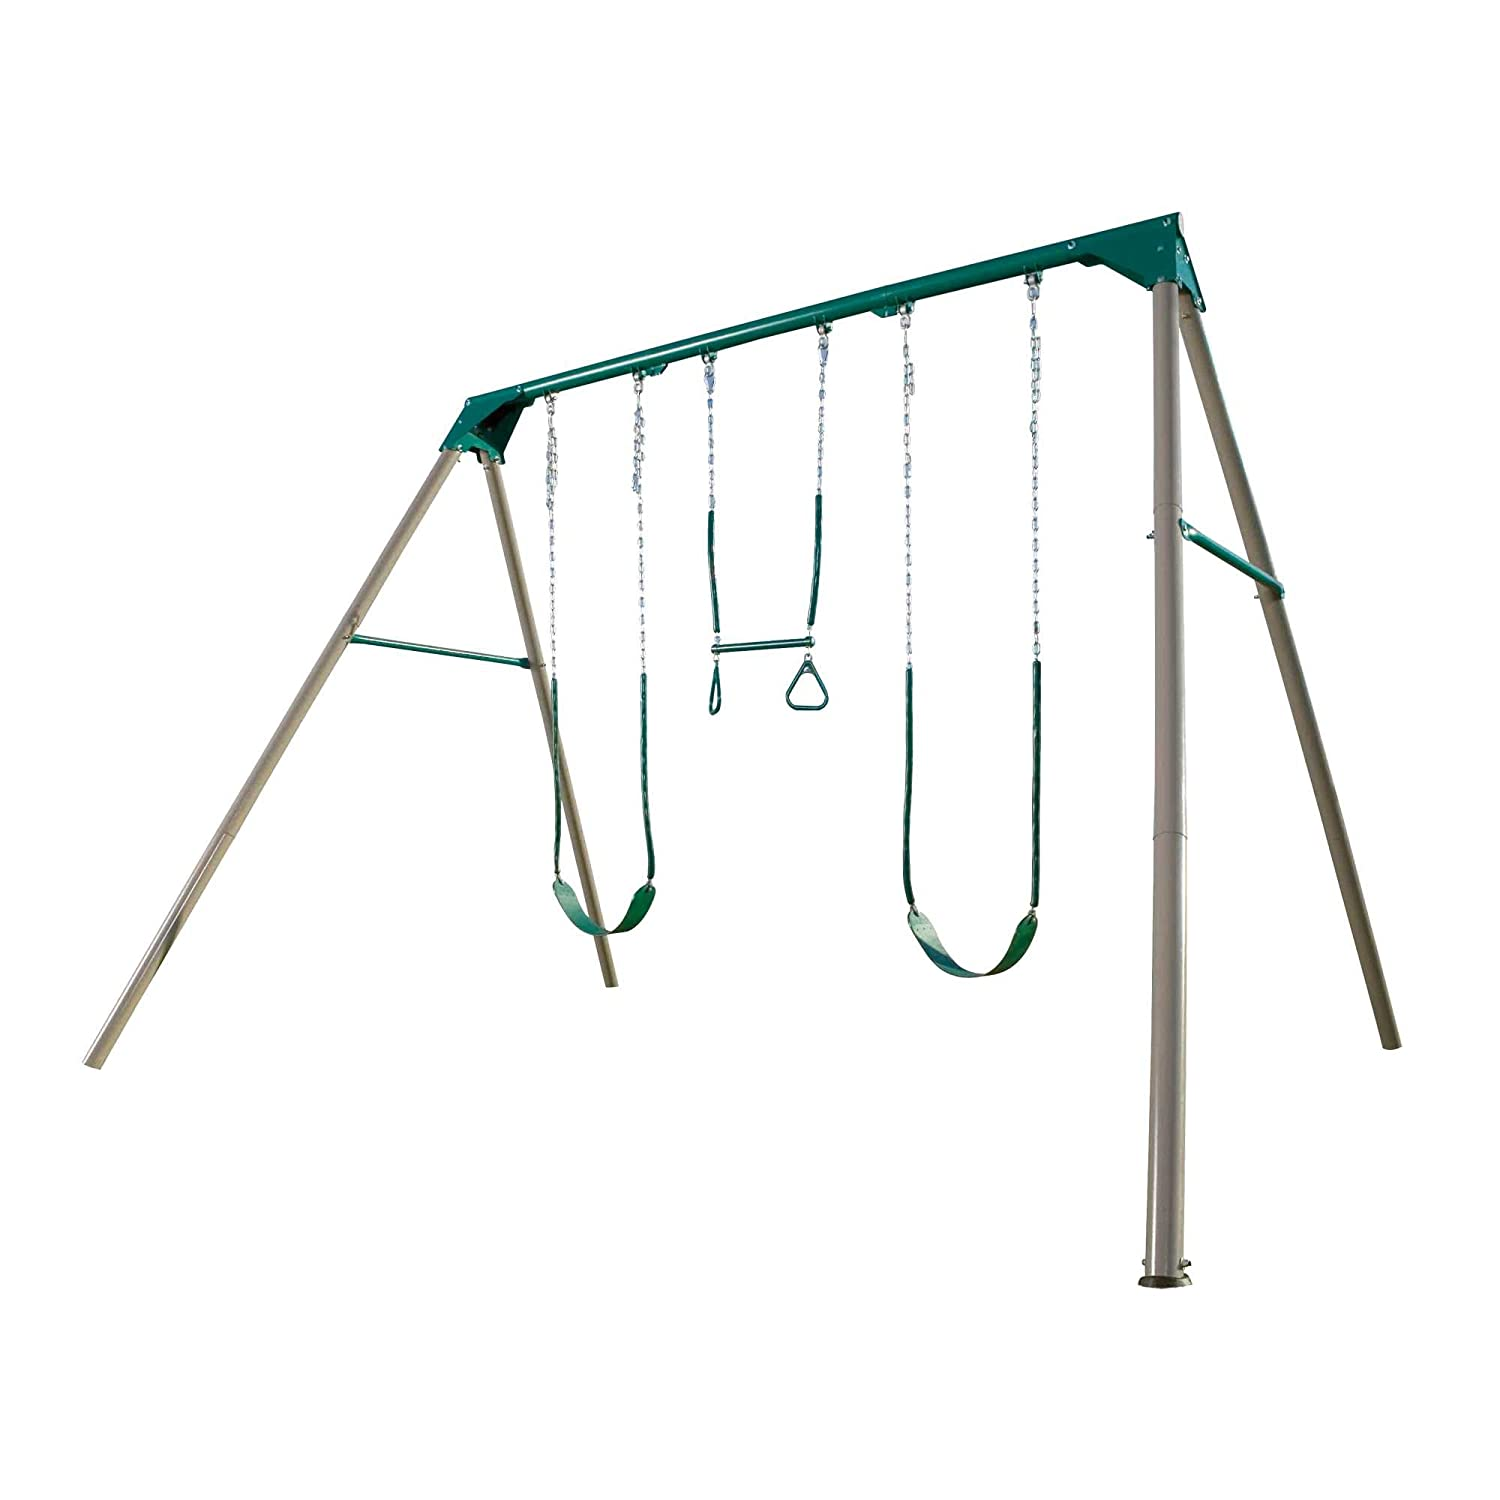 Lifetime heavy Duty swing set